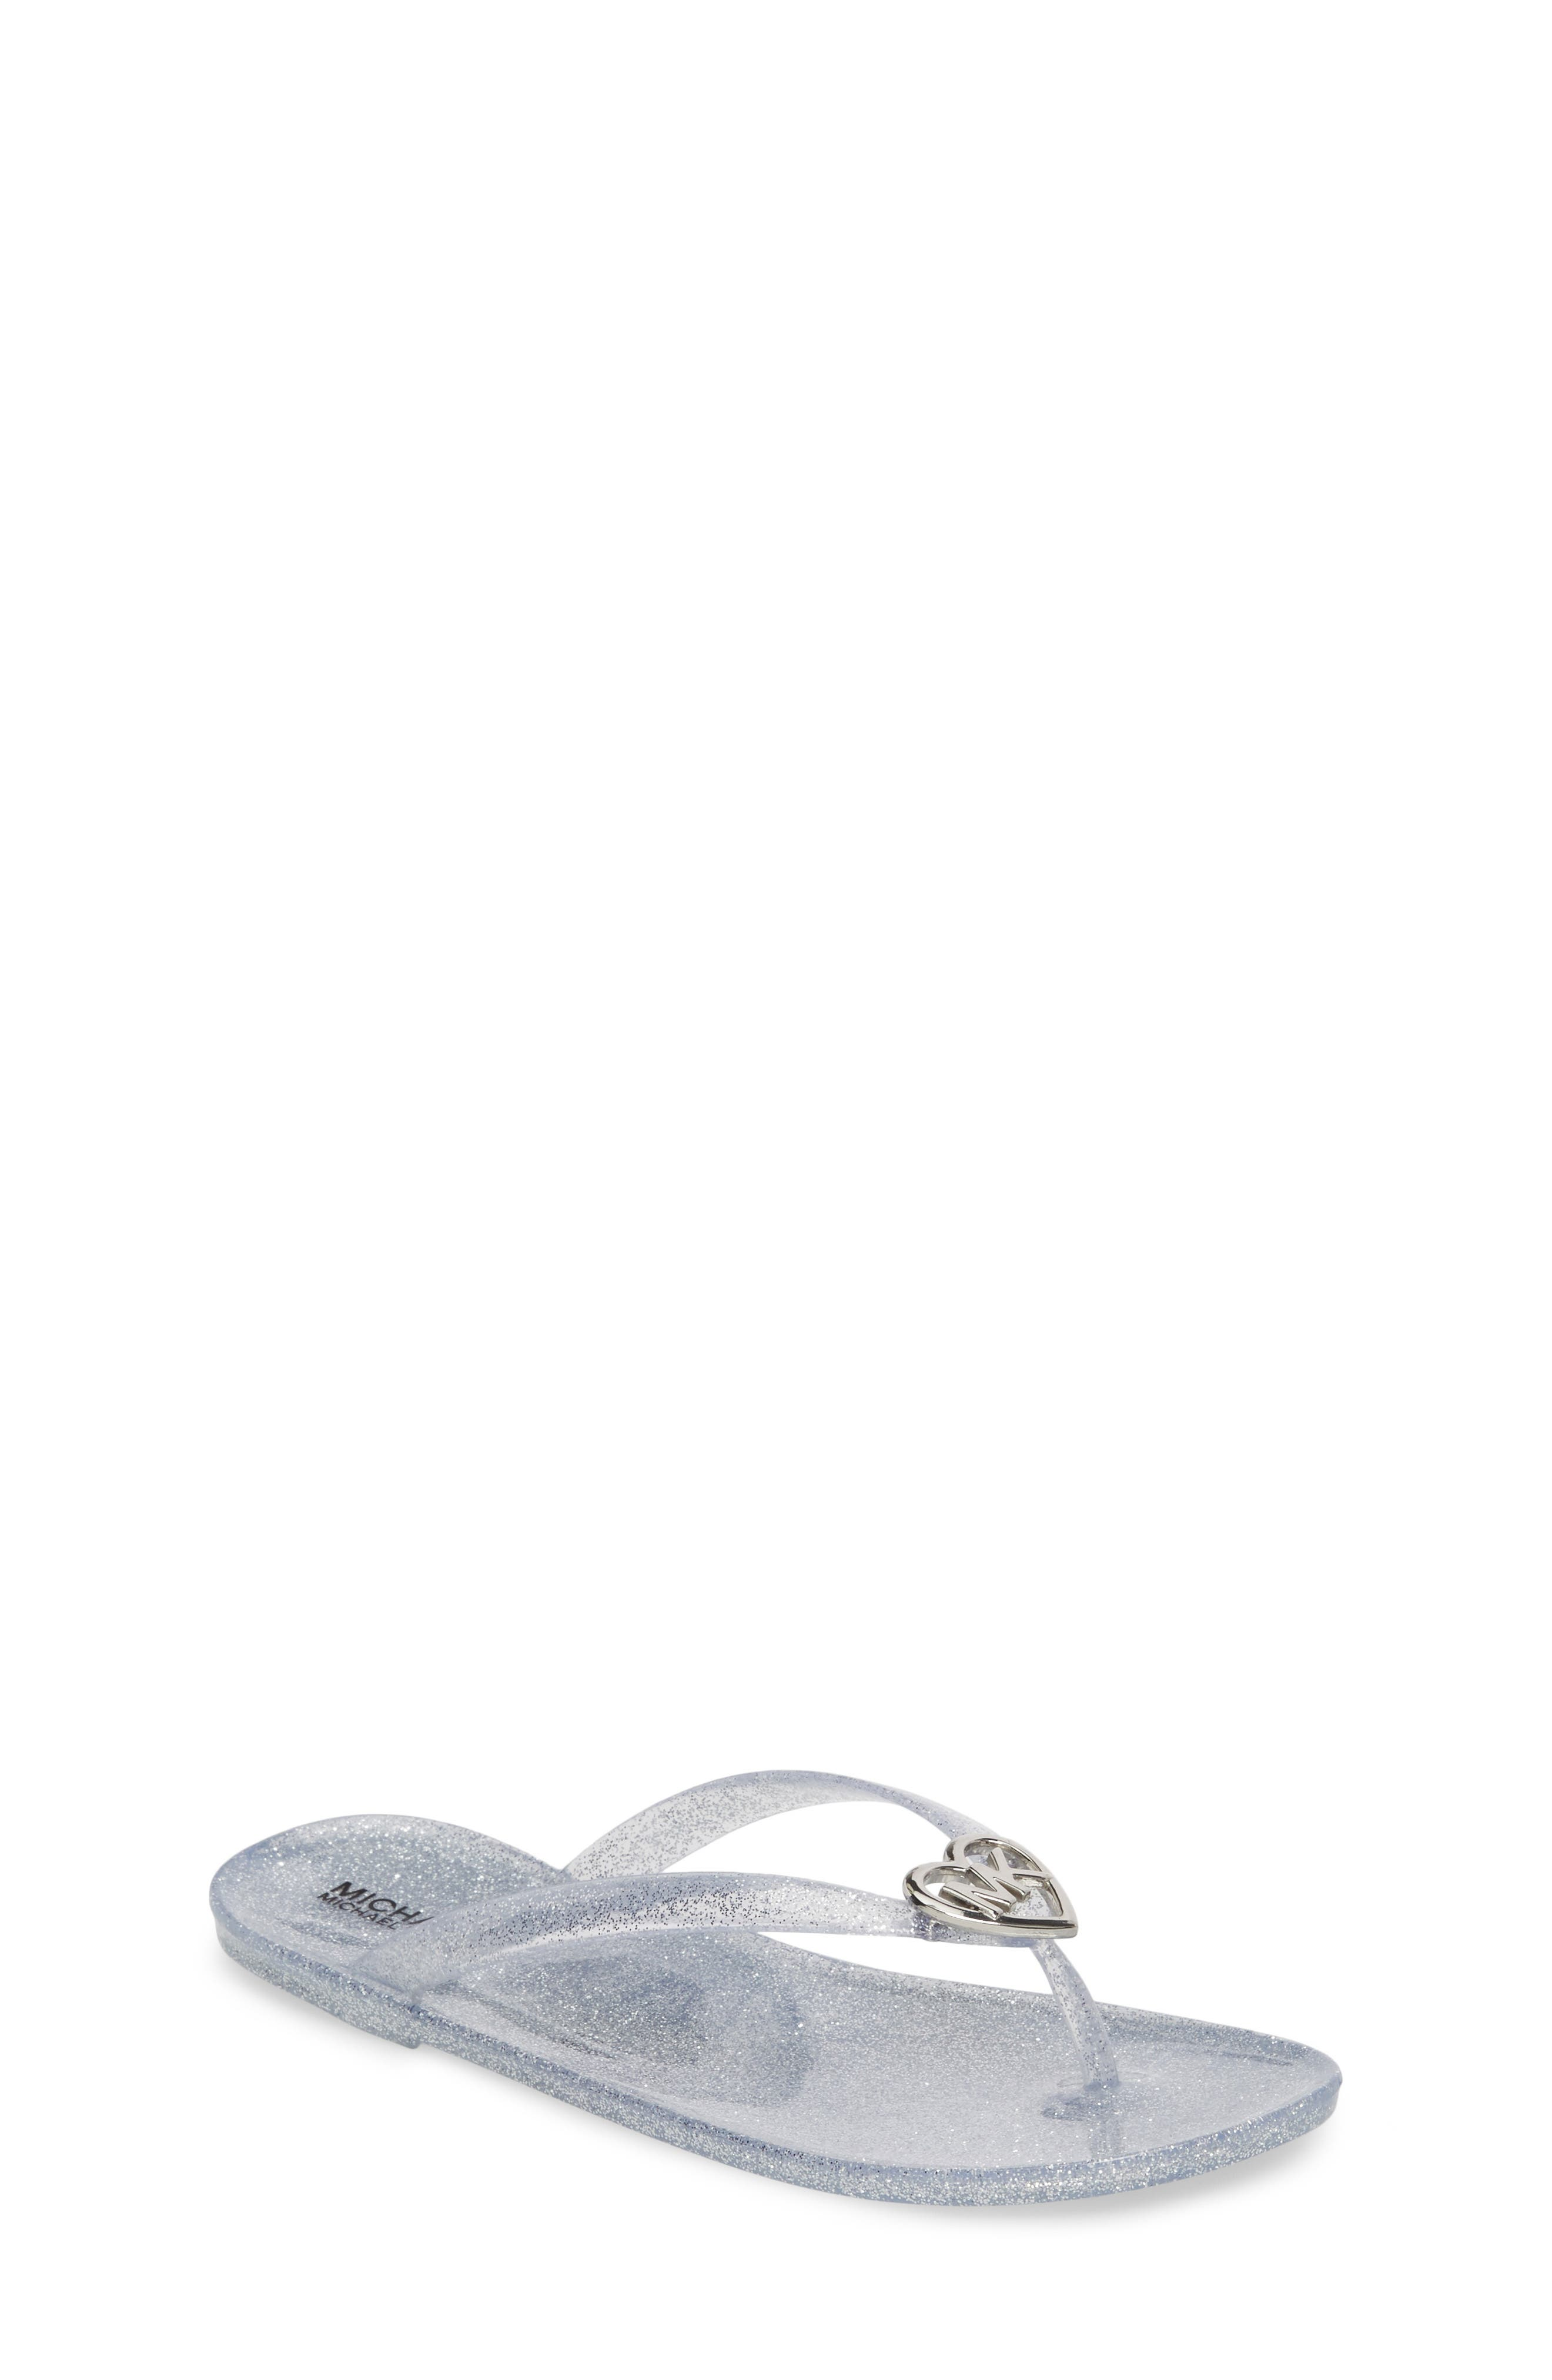 Trish Glare Glitter Flip Flop,                             Main thumbnail 1, color,                             040